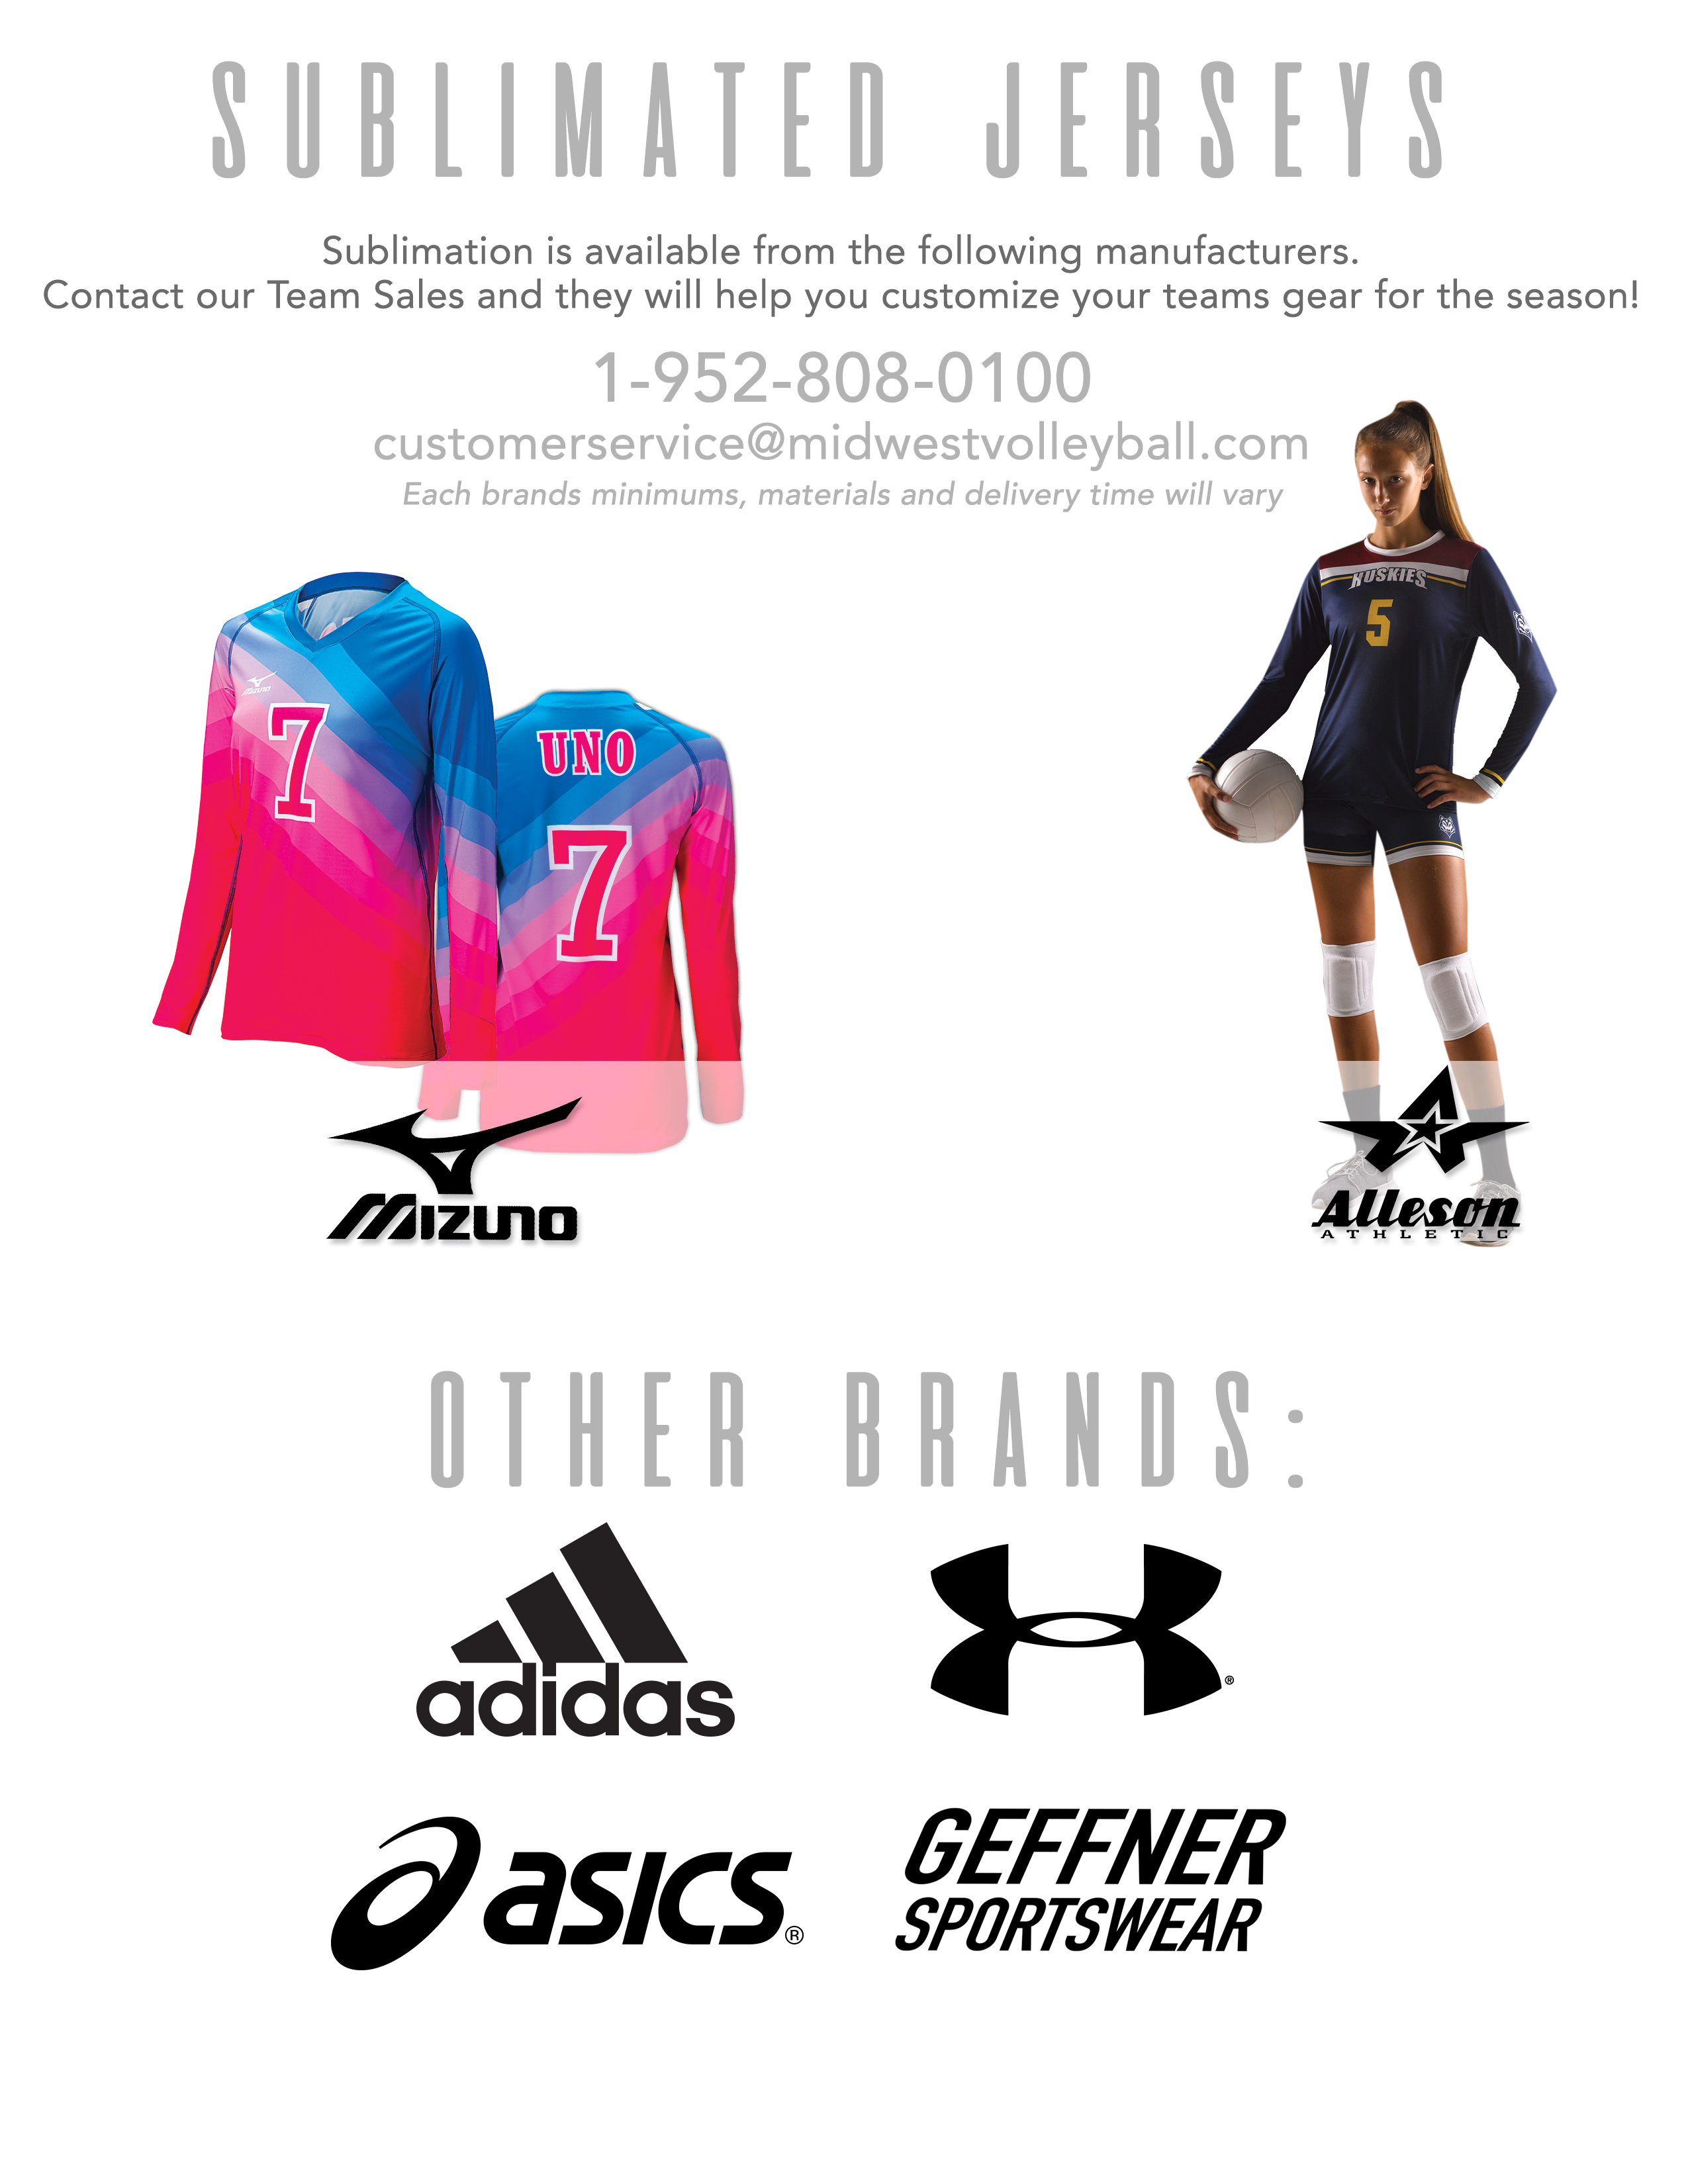 Sublimated Jersyes. Sublimation is available from the following manufacturers. Contact our Uniform Sales Associates and they will help you customize your teams gear for the season! 1-952-808-0100 (customerservice@midwestvolleyball.com (each brands minimums, materials and delivery time will vary): Mizuno, Under Armour, Asics, Adidas, Alleson